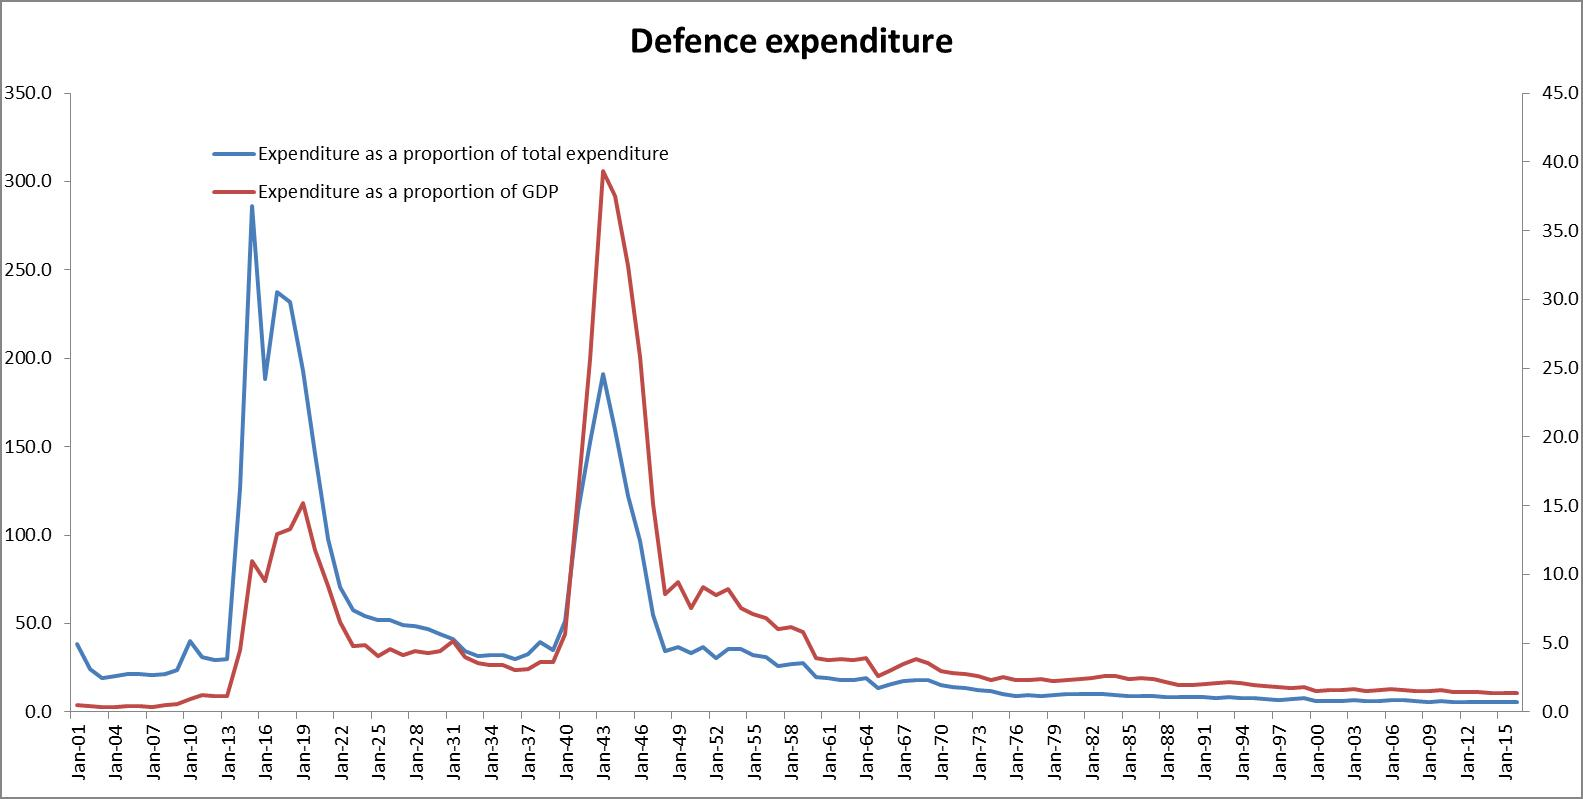 Graph 1: Defence expenditure as a proportion of GDP and total expenditure